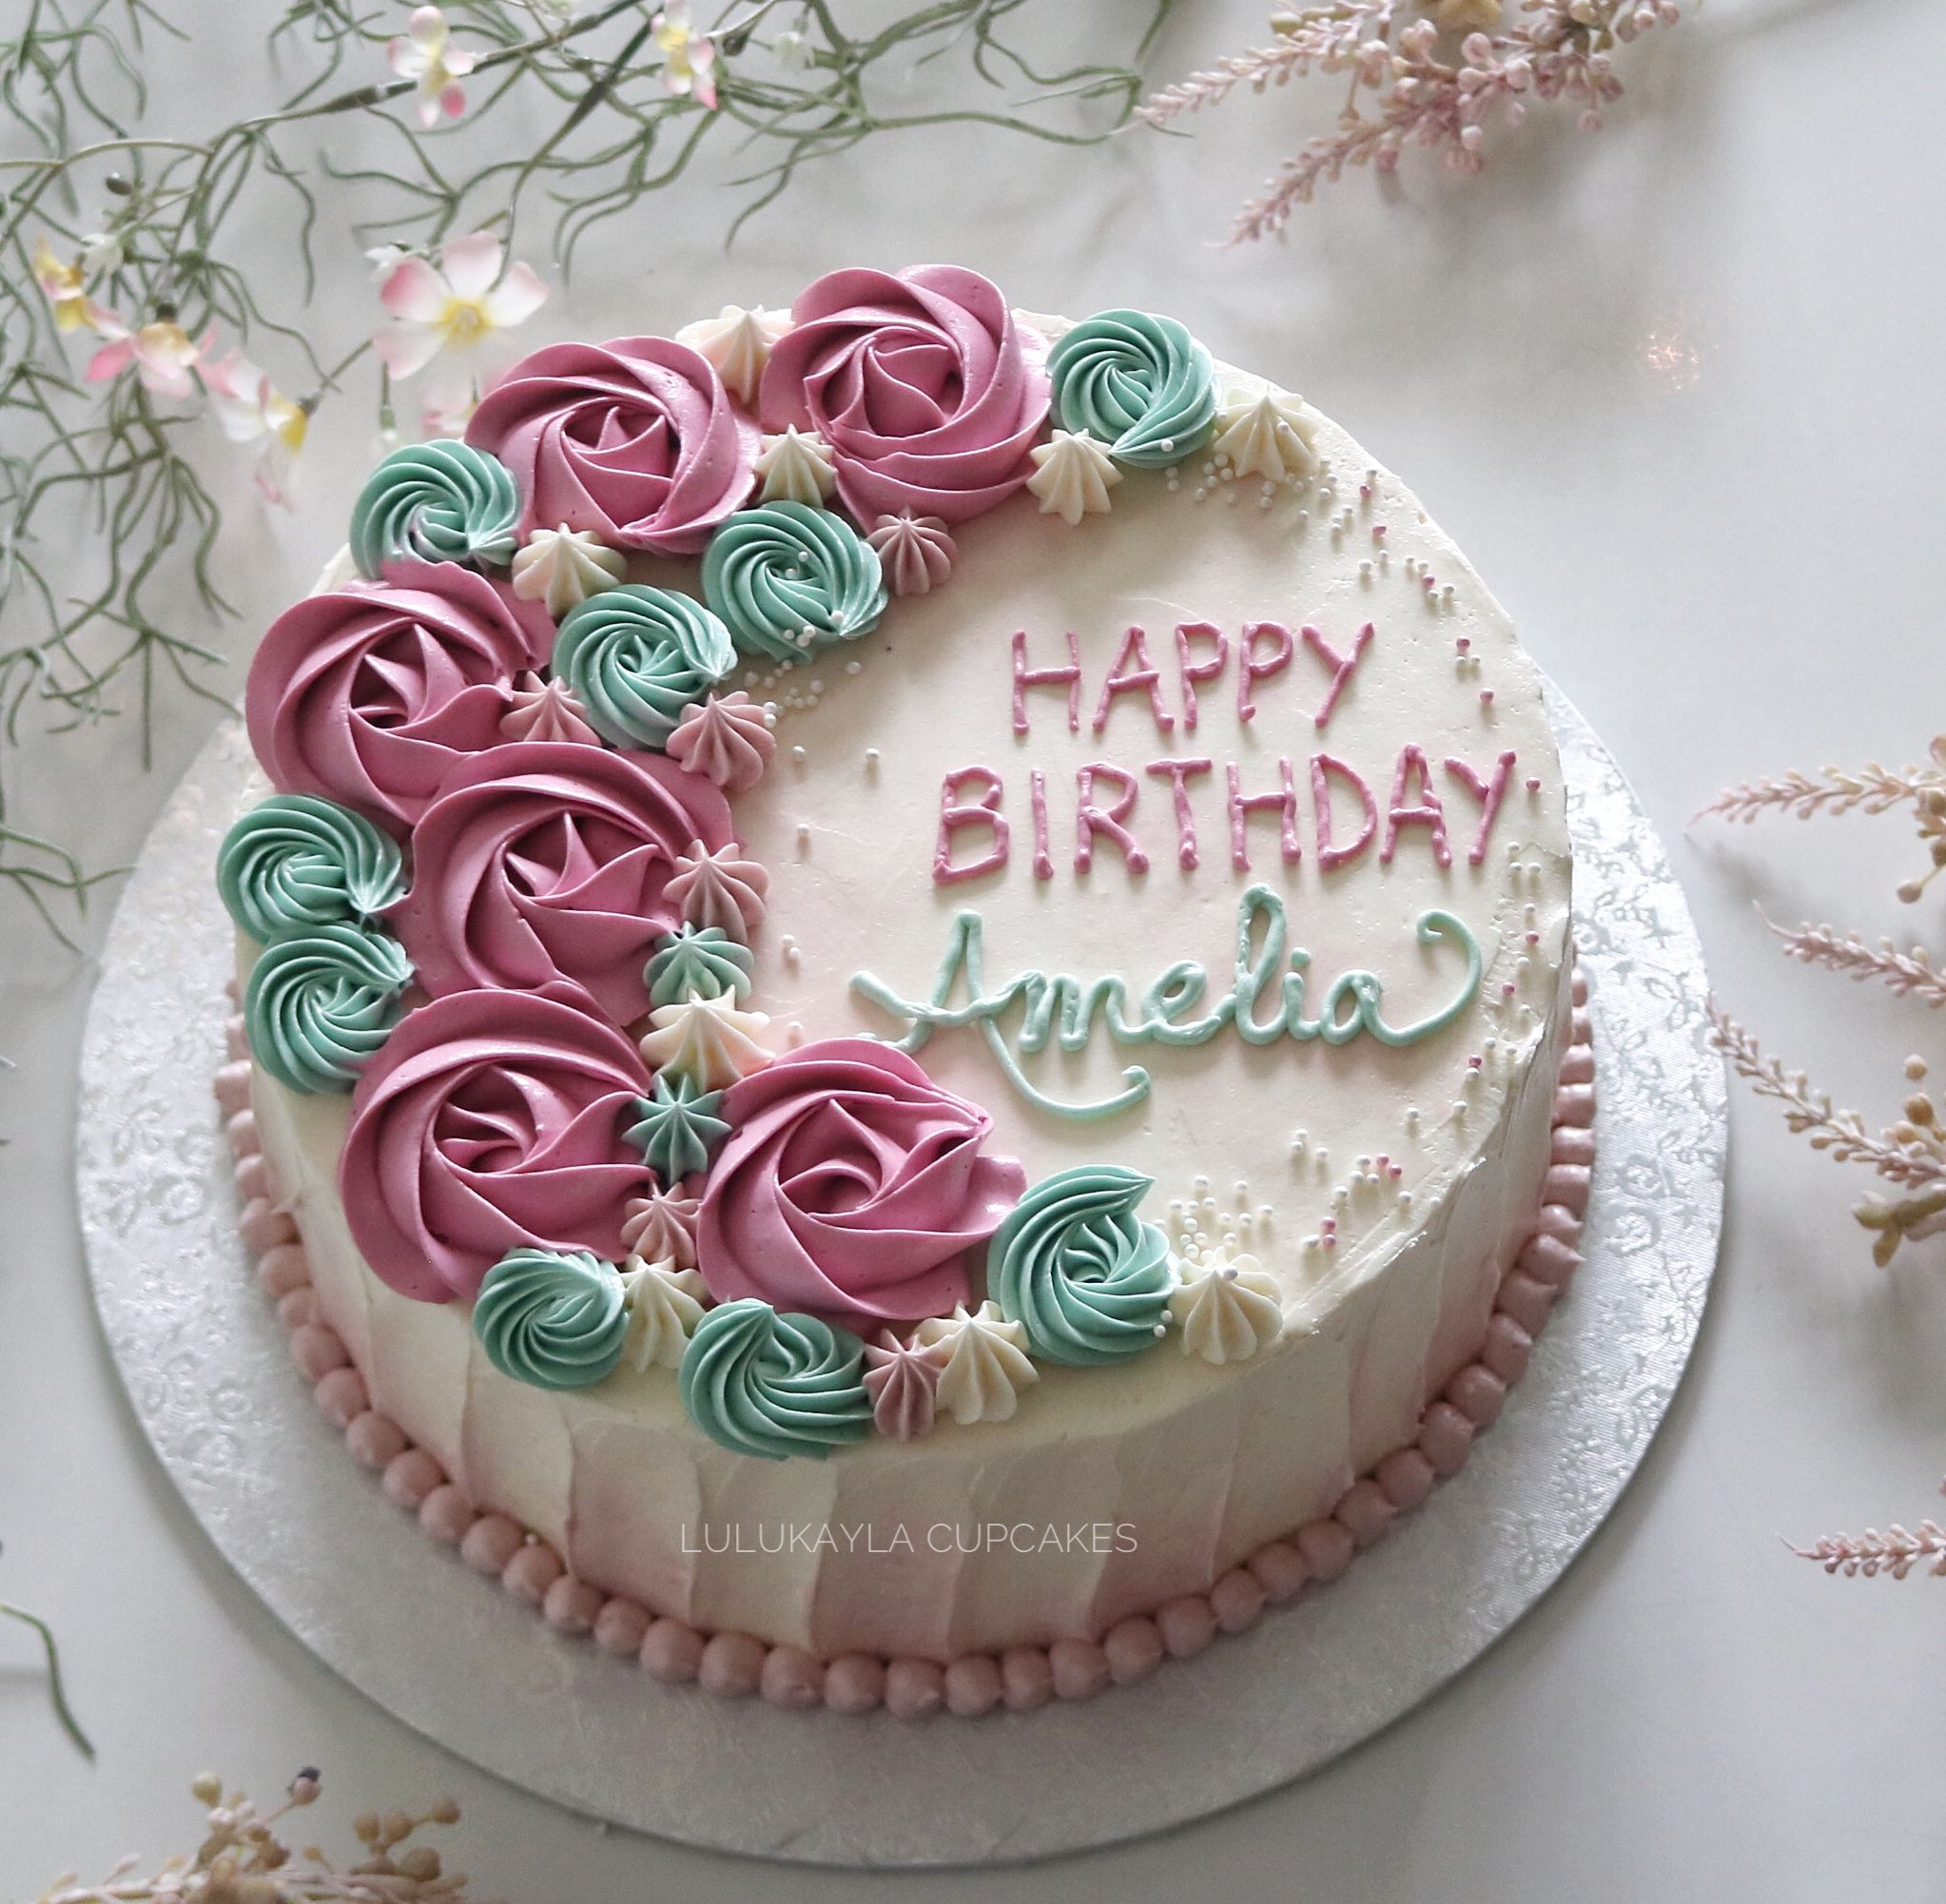 Rose Flower Buttercream Cake Buttercream Cake Designs Cake Birthday Cake Decorating